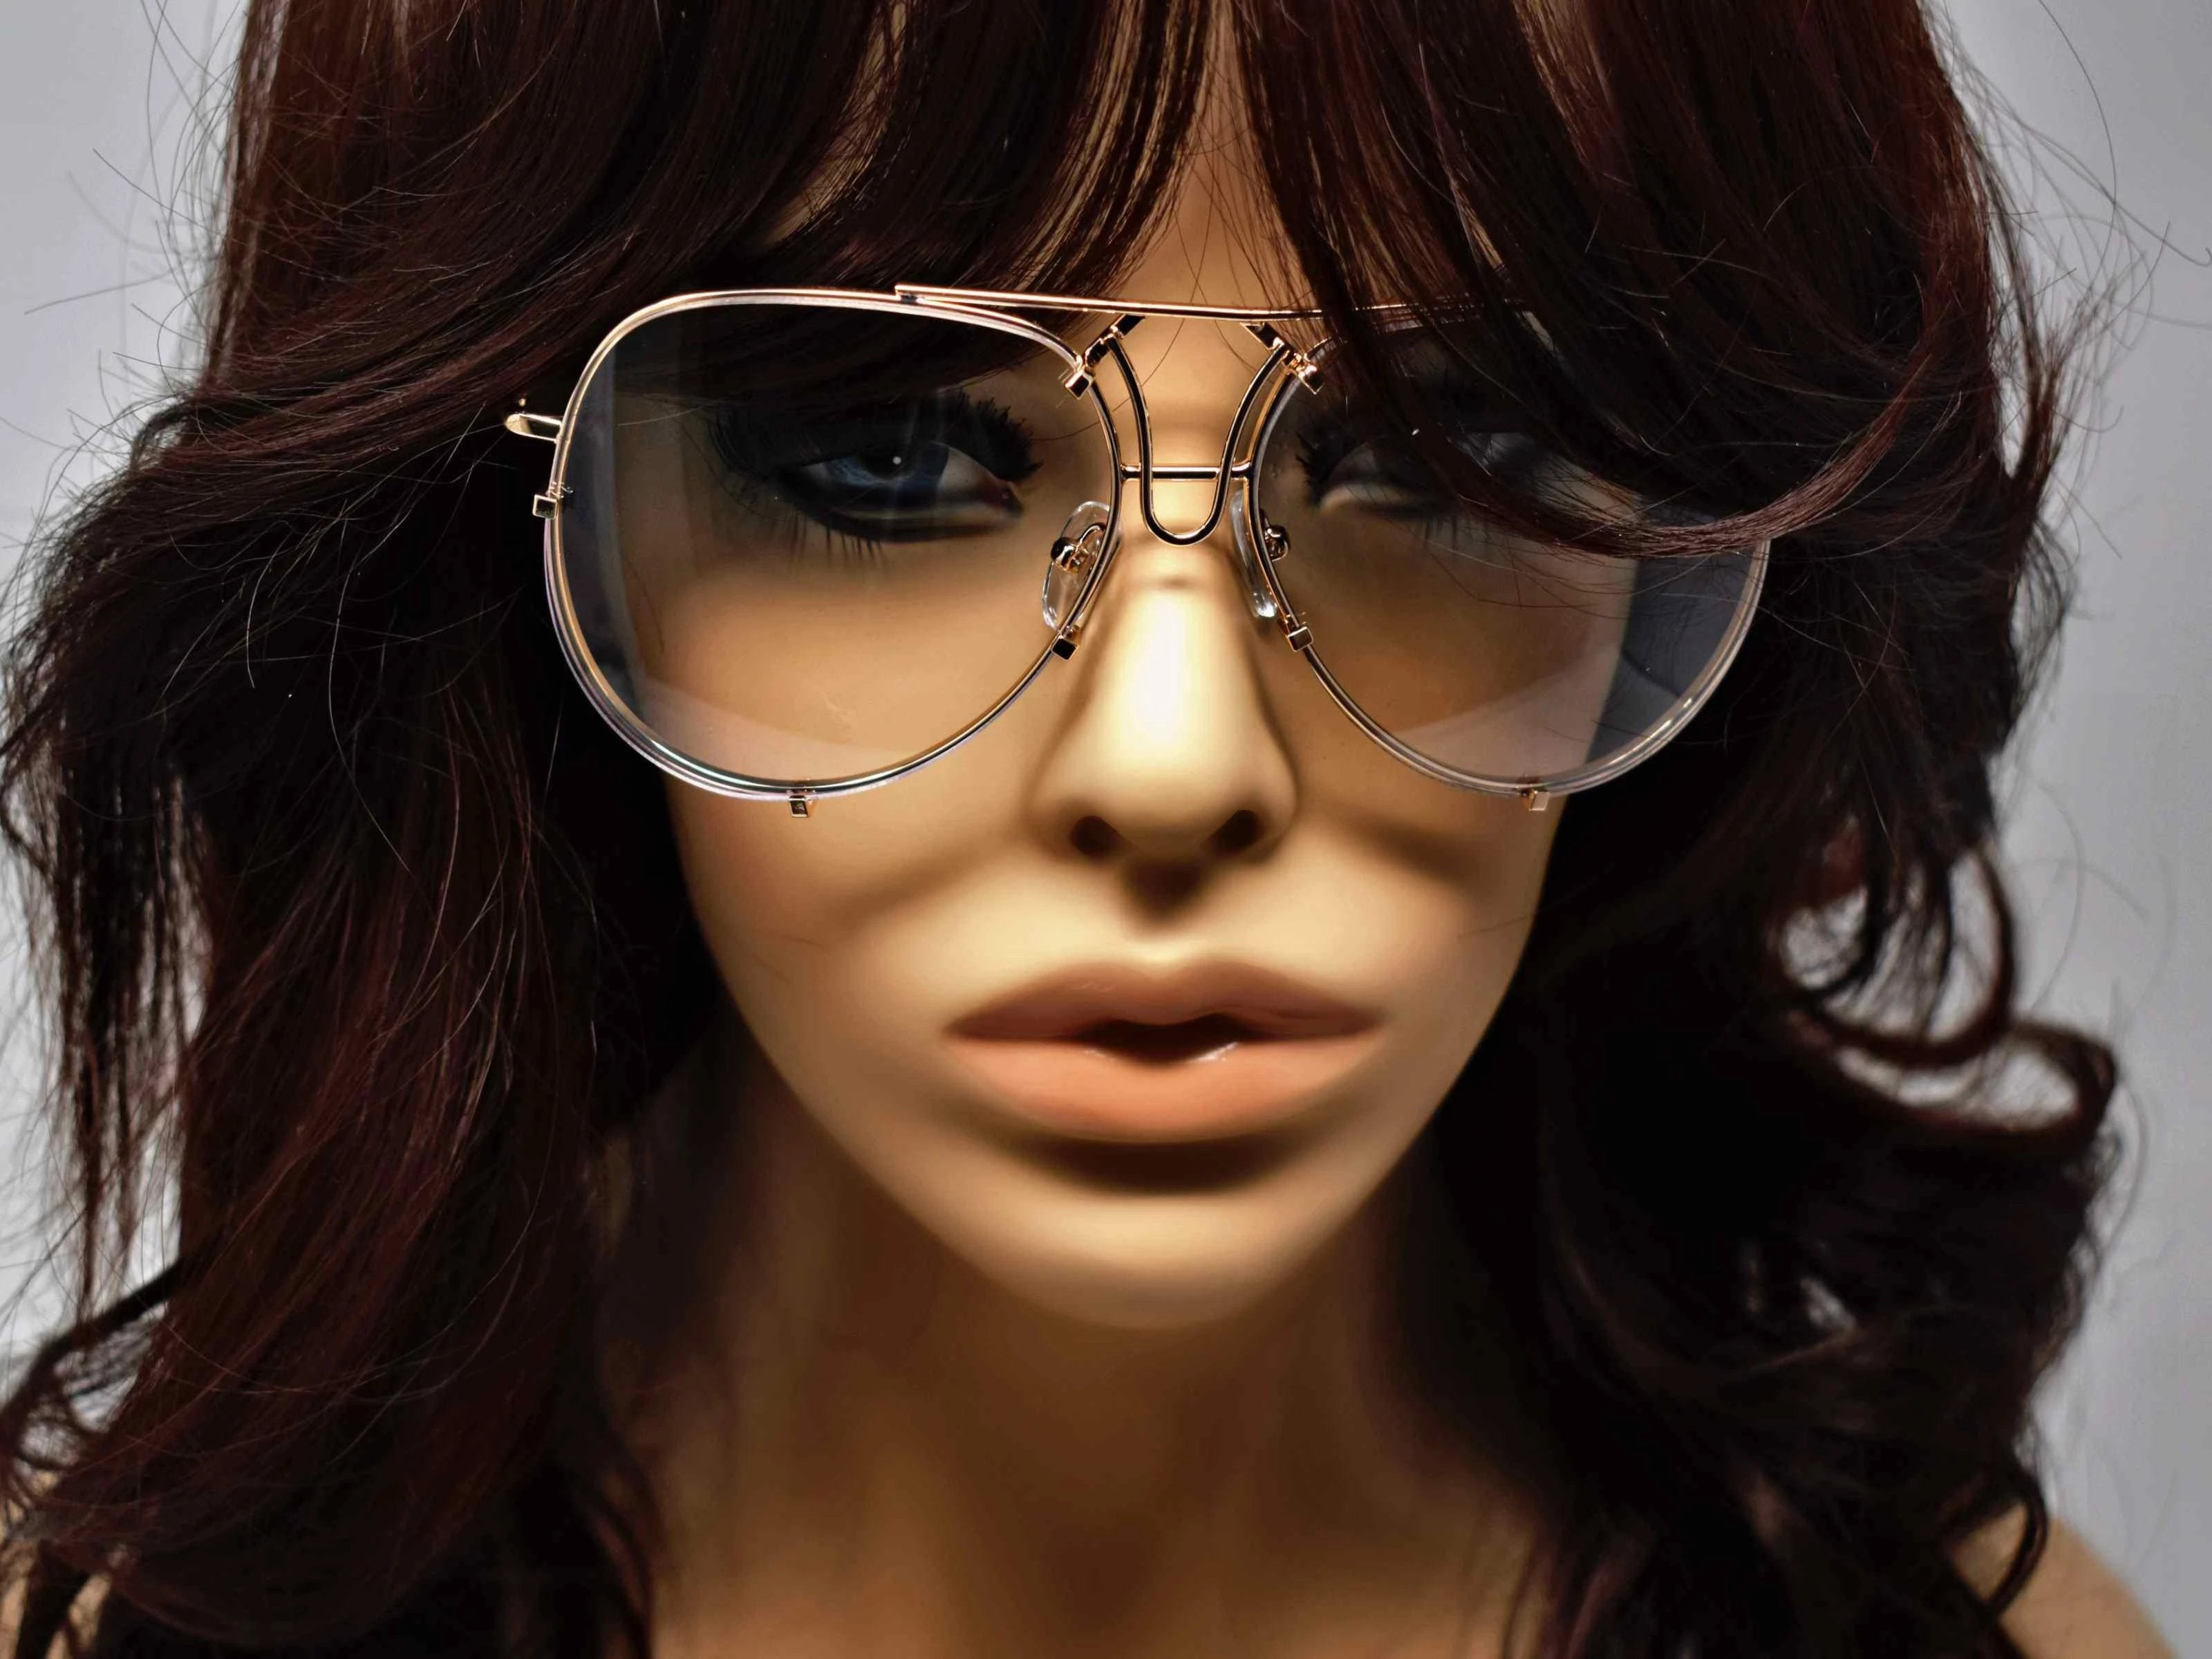 Make sure you indulge in our brilliant Viburnum gold aviator style glasses with a clear lens.